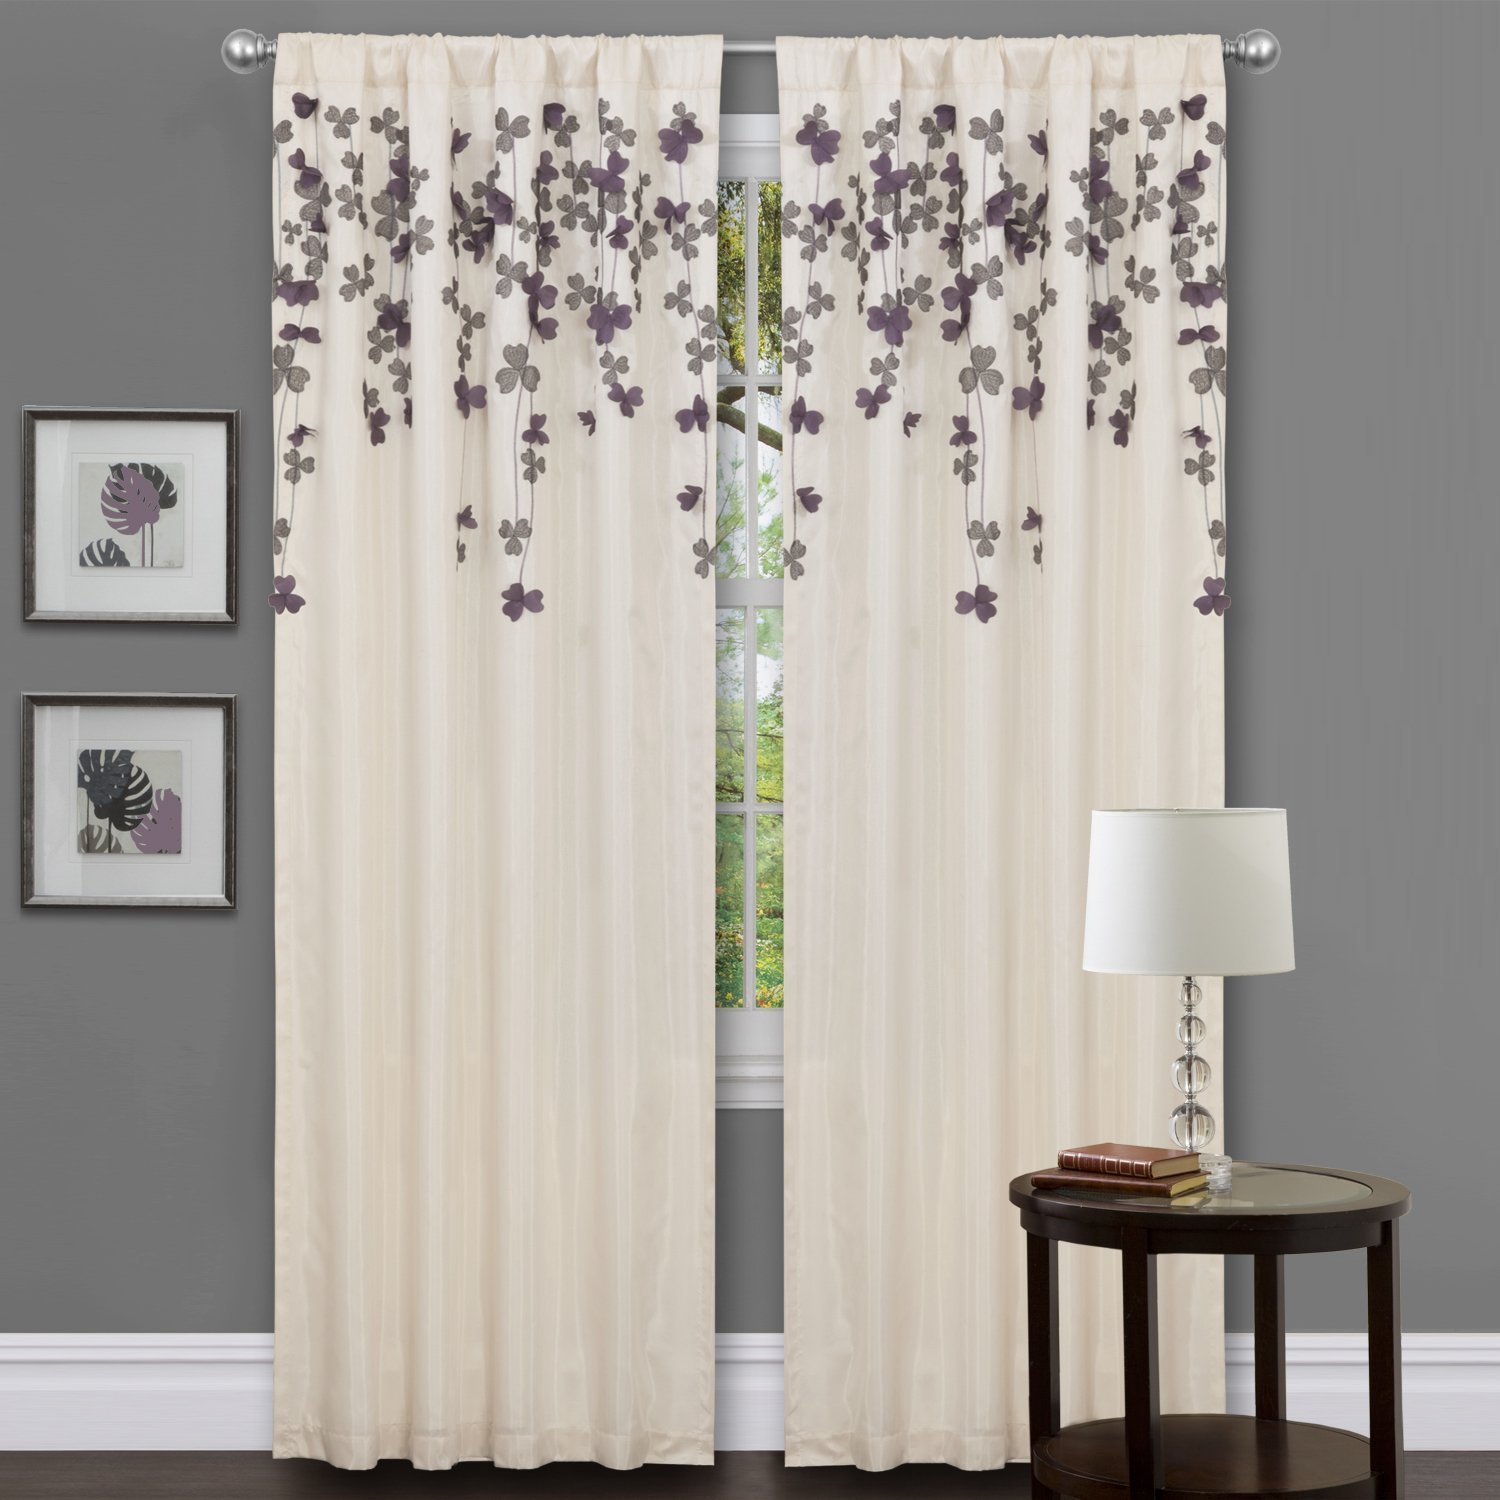 Lush Decor Flower Drop Curtain Panel Purple New Free Shipping